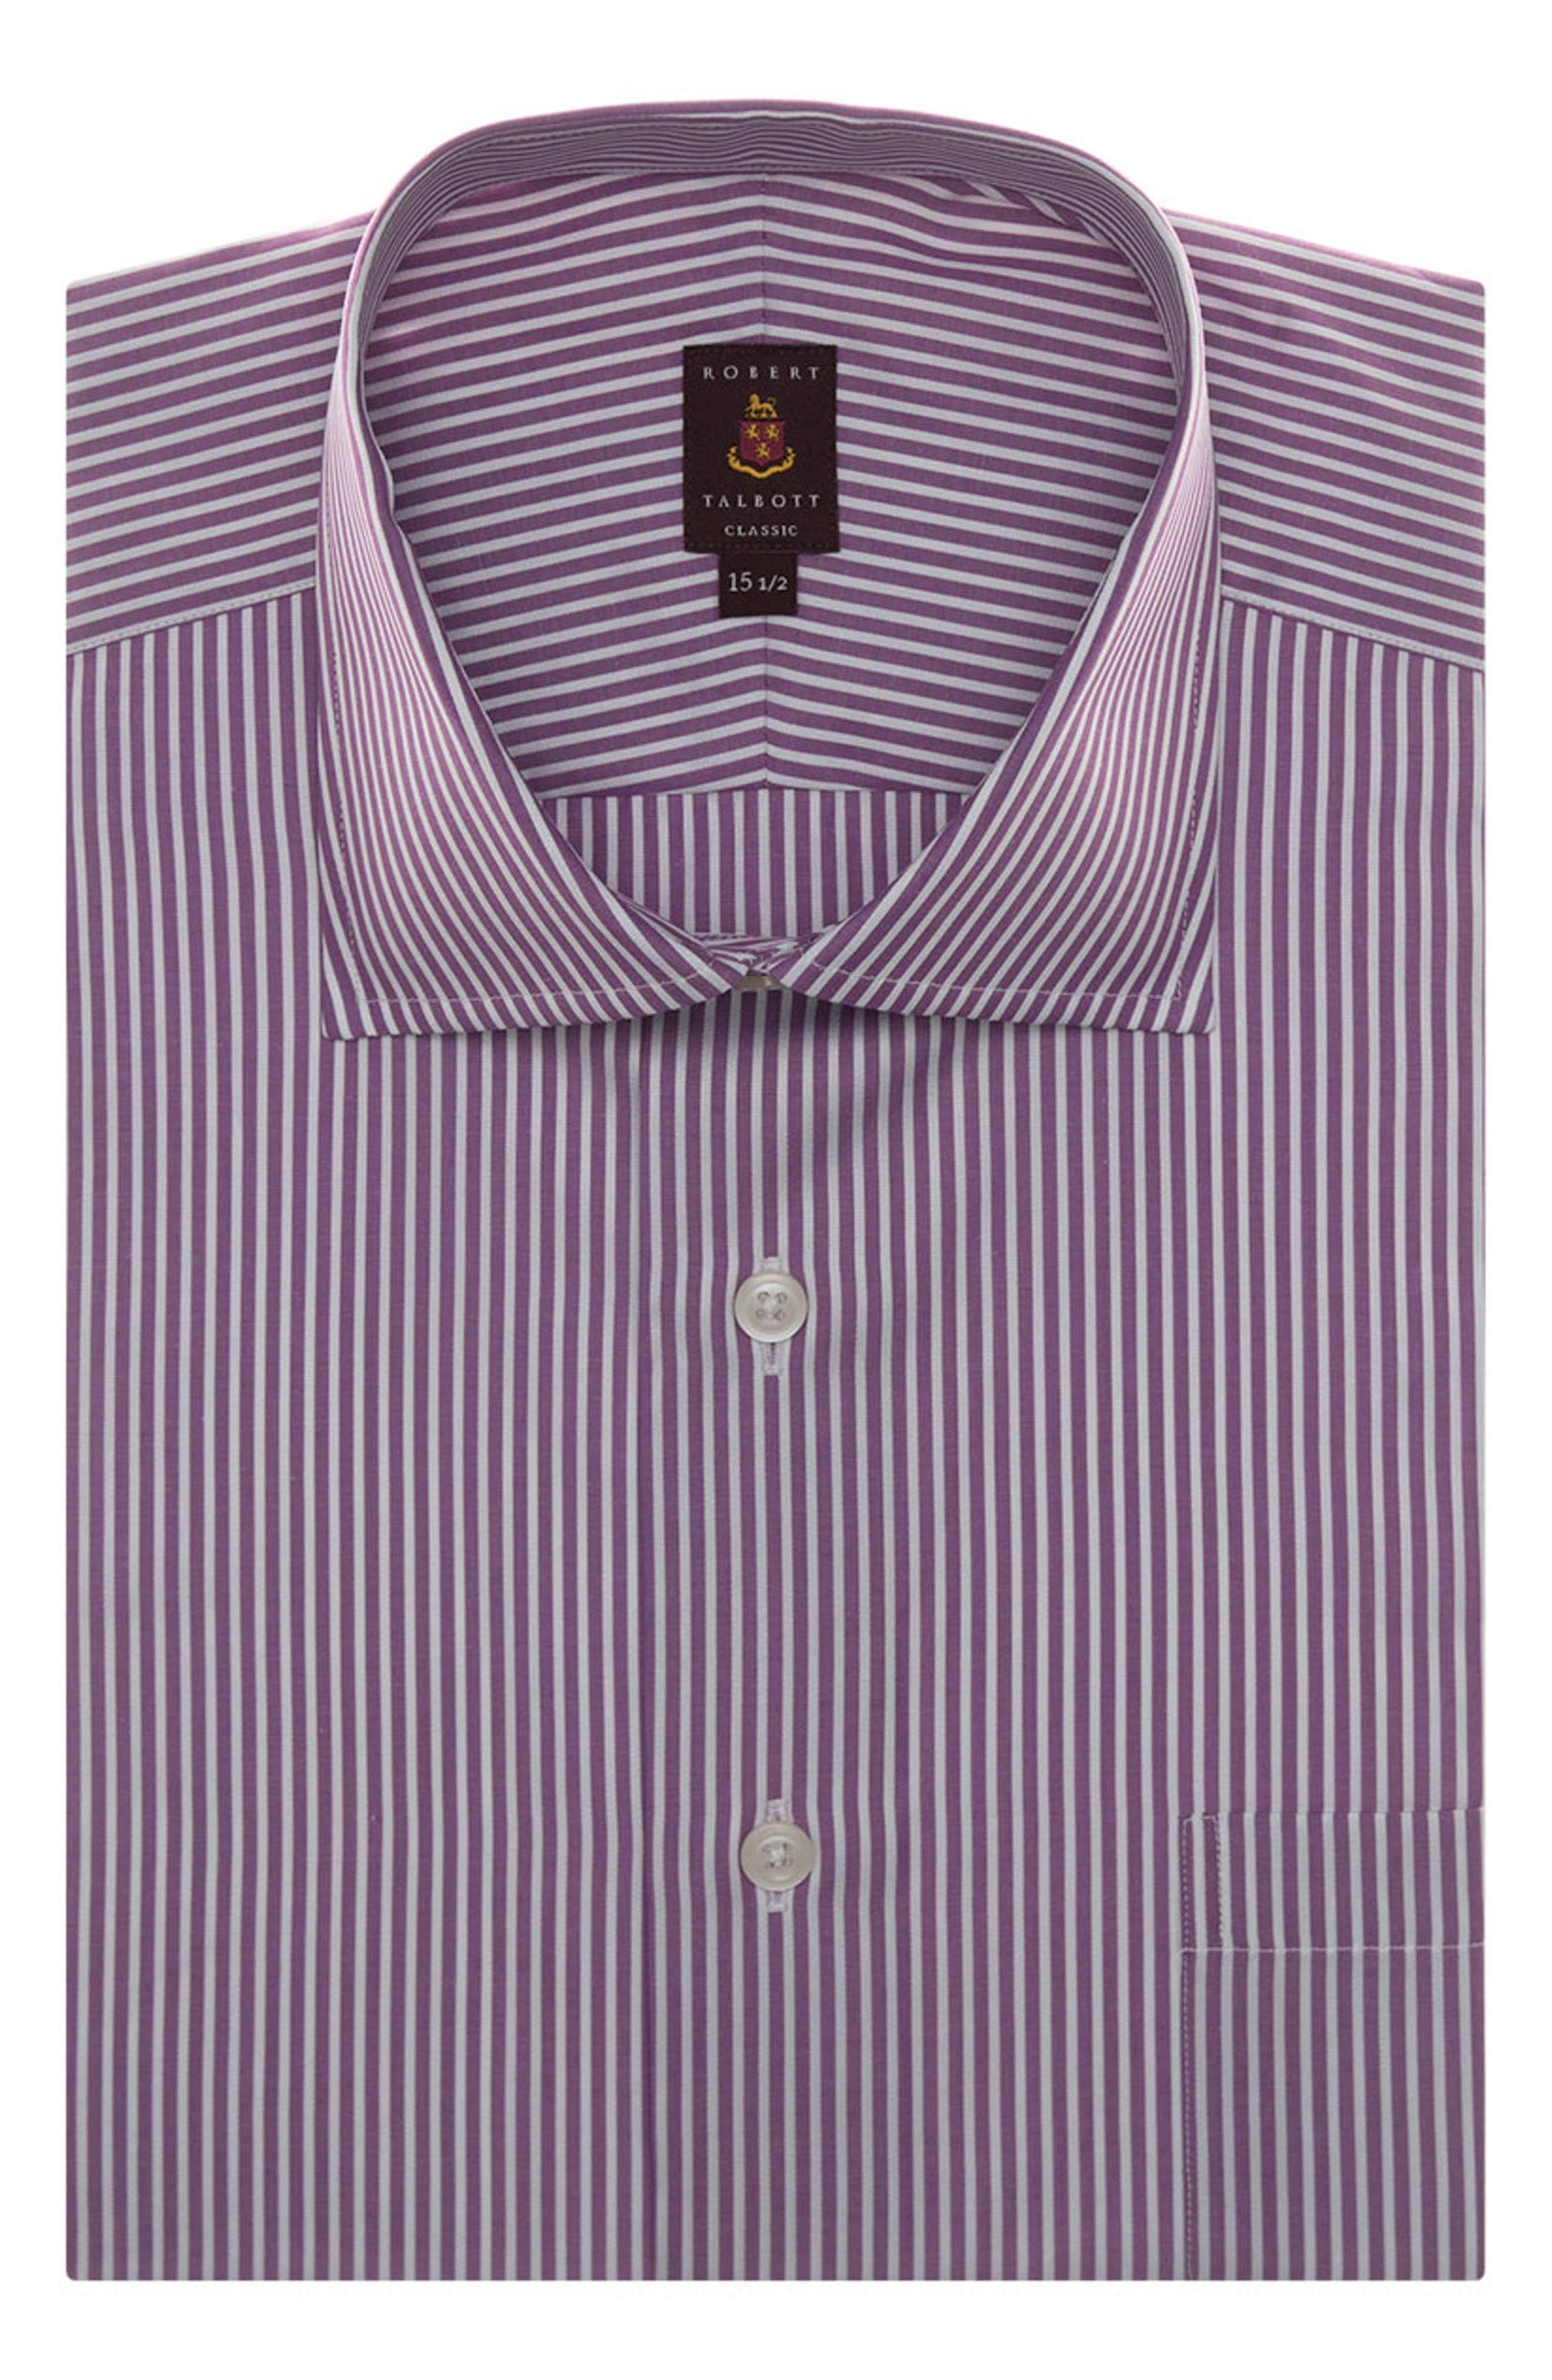 Tailored Fit Stripe Dress Shirt,                         Main,                         color, Plum